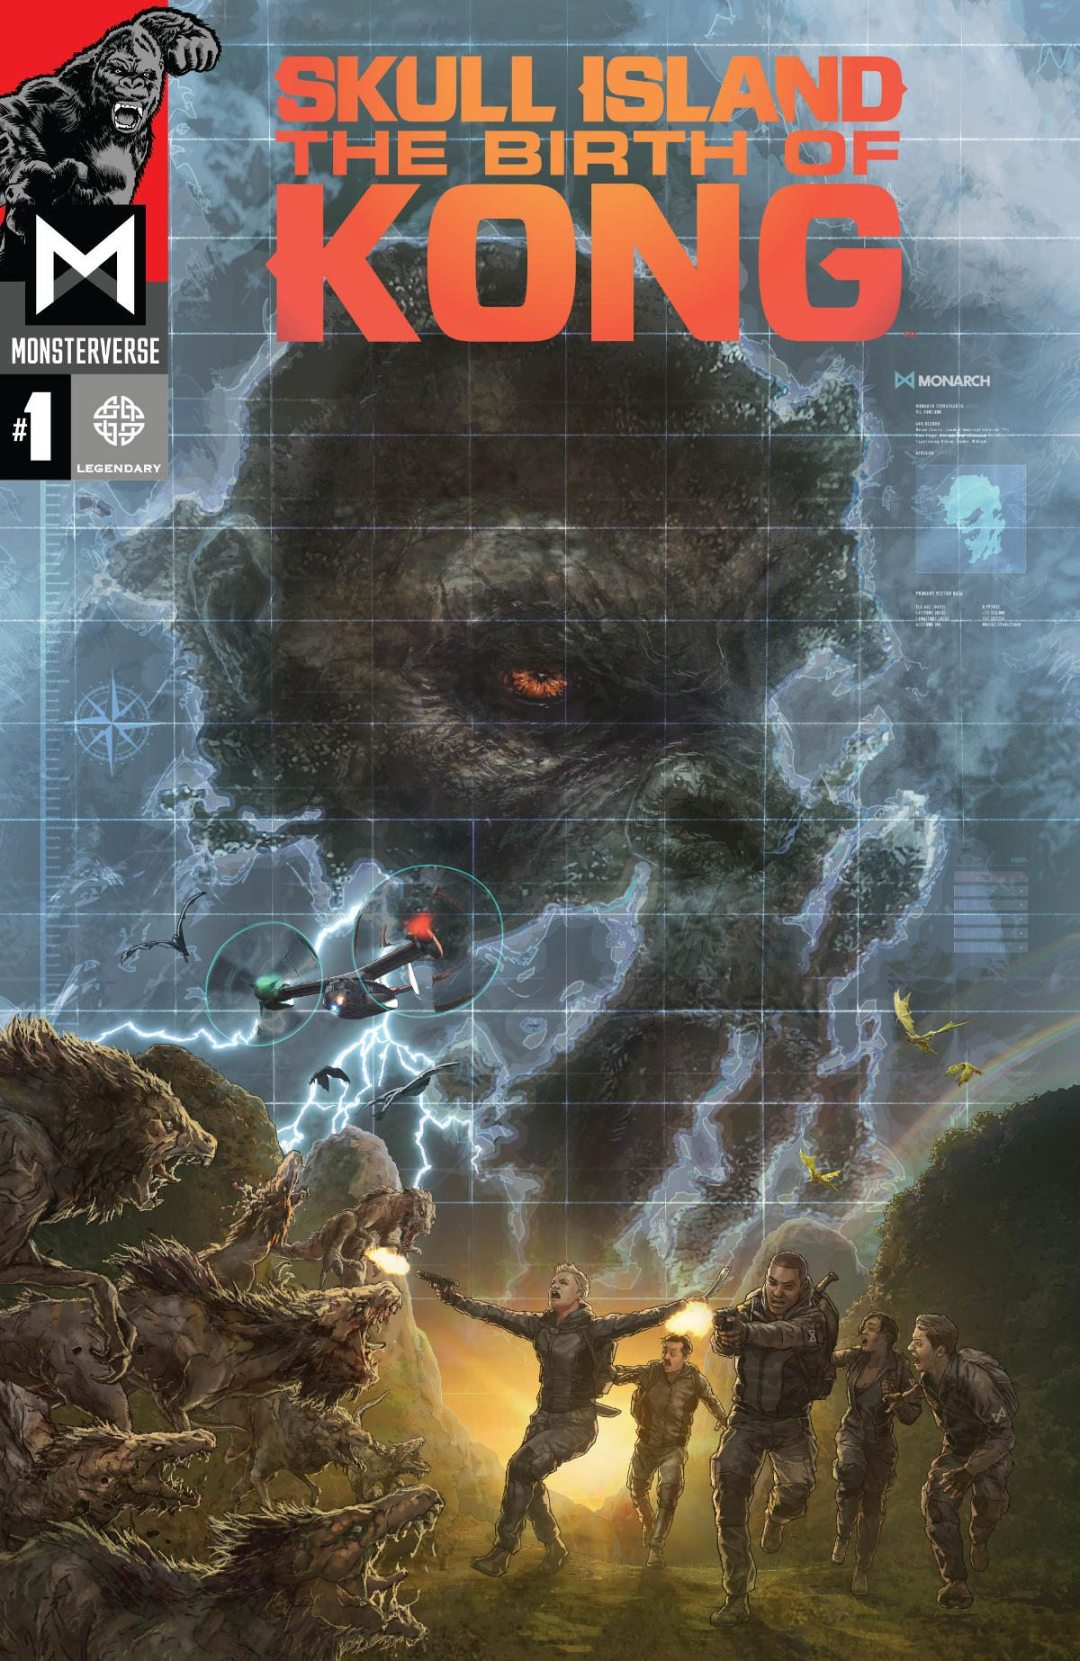 'Skull Island: The Birth of Kong' Comic Series Gets a Trailer